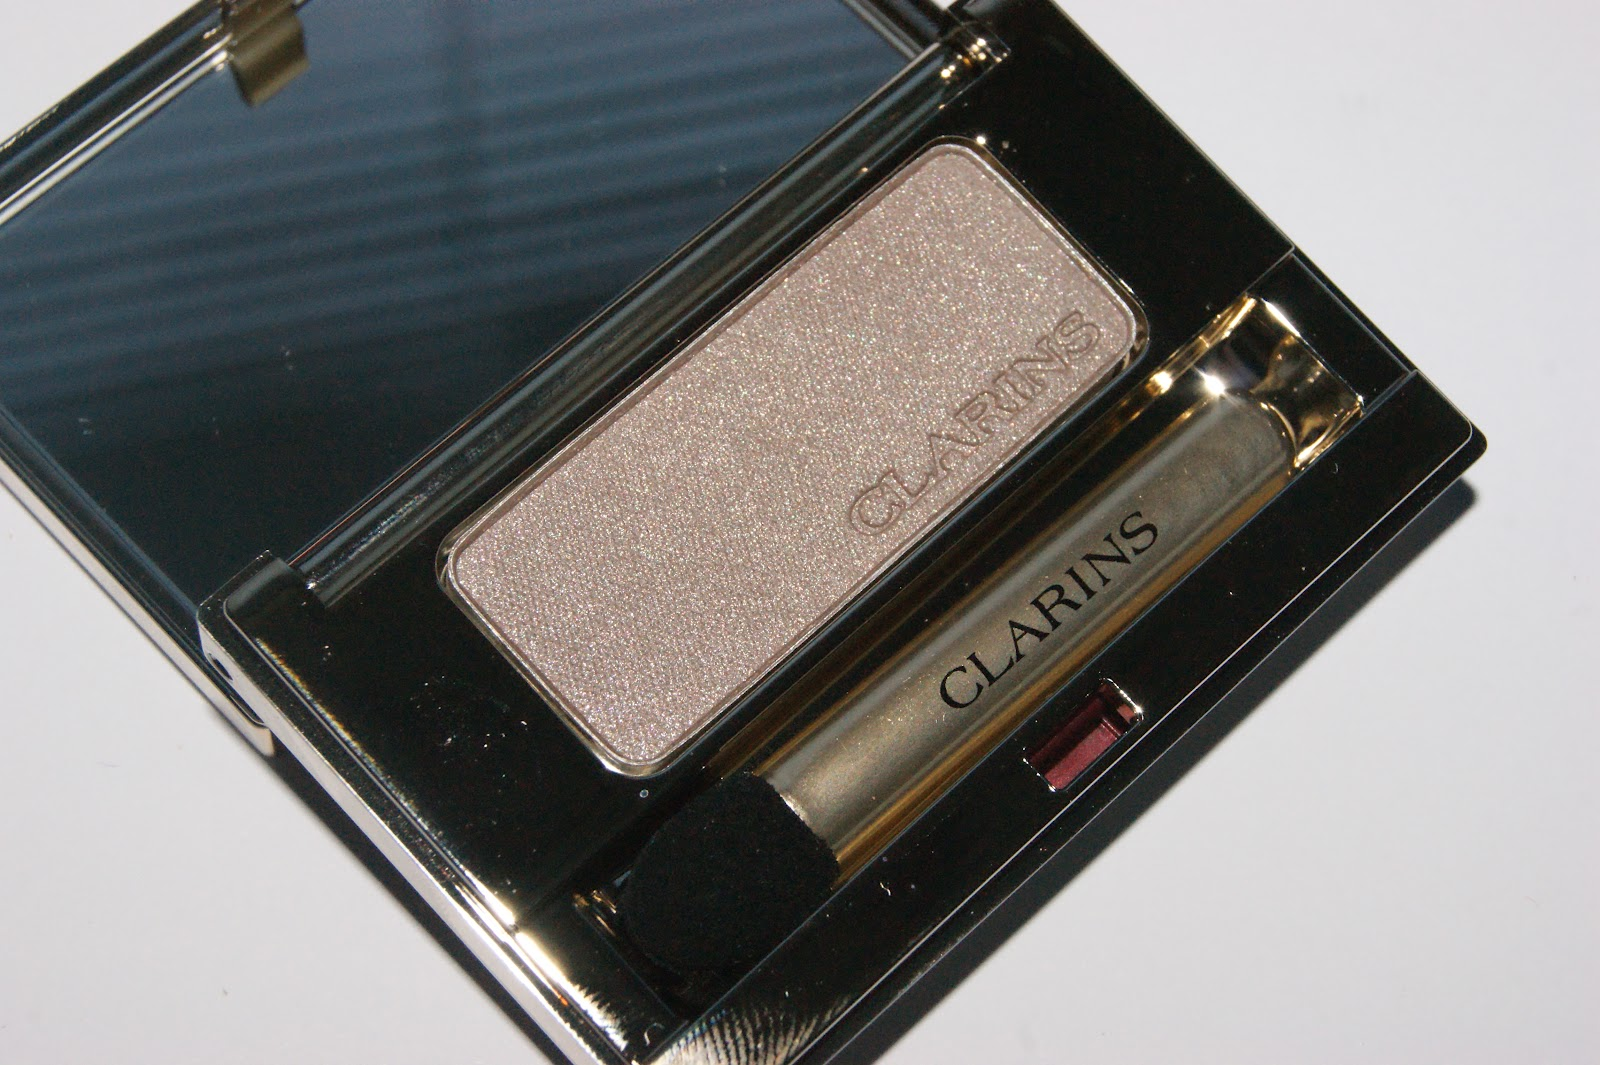 8624574d8ab Clarins Ombre Minerale Eye Shadow in Taupe - Review | The Sunday Girl